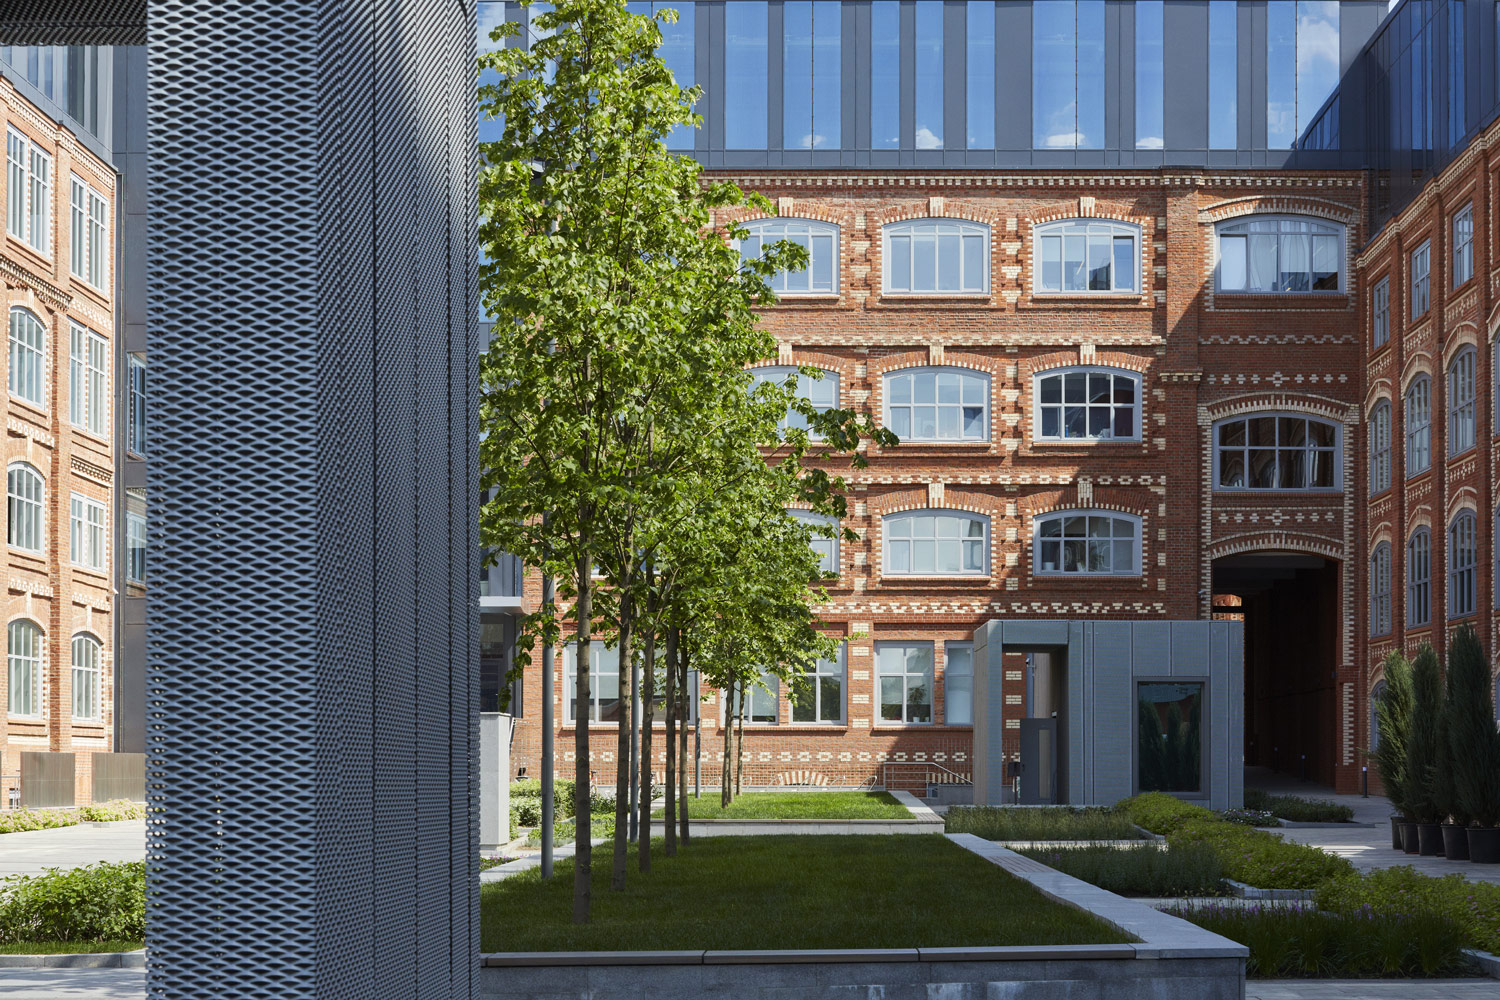 Detailed view of the restored external brickwork and public external space